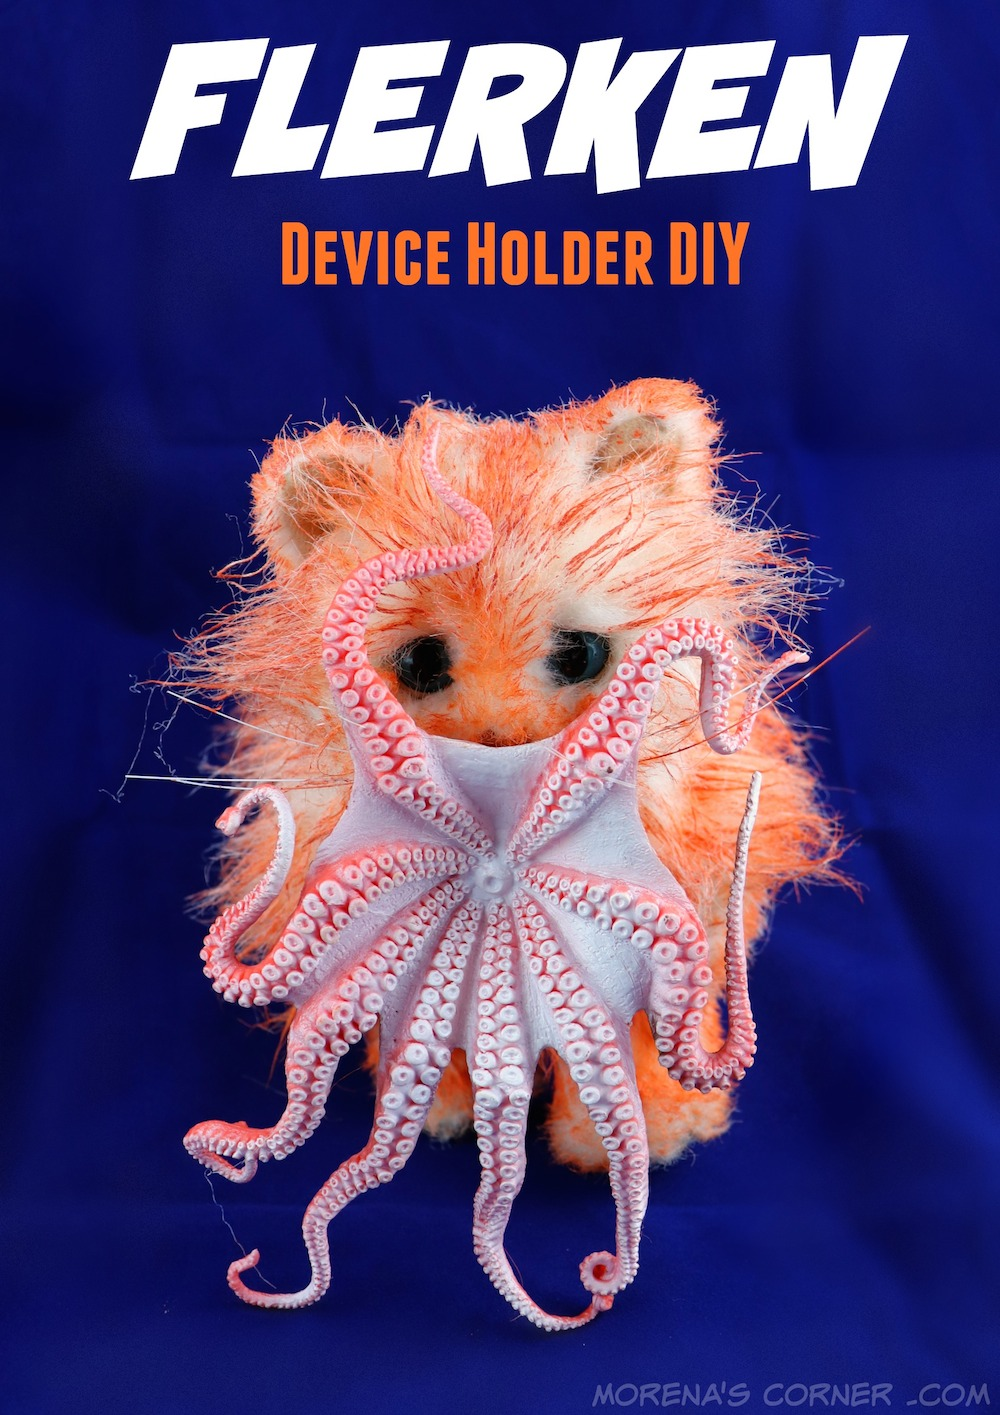 This geek craft is inpired by the new Captain Marvel movie. Make a cute Flerken DIY device holder using items from Goodwill.